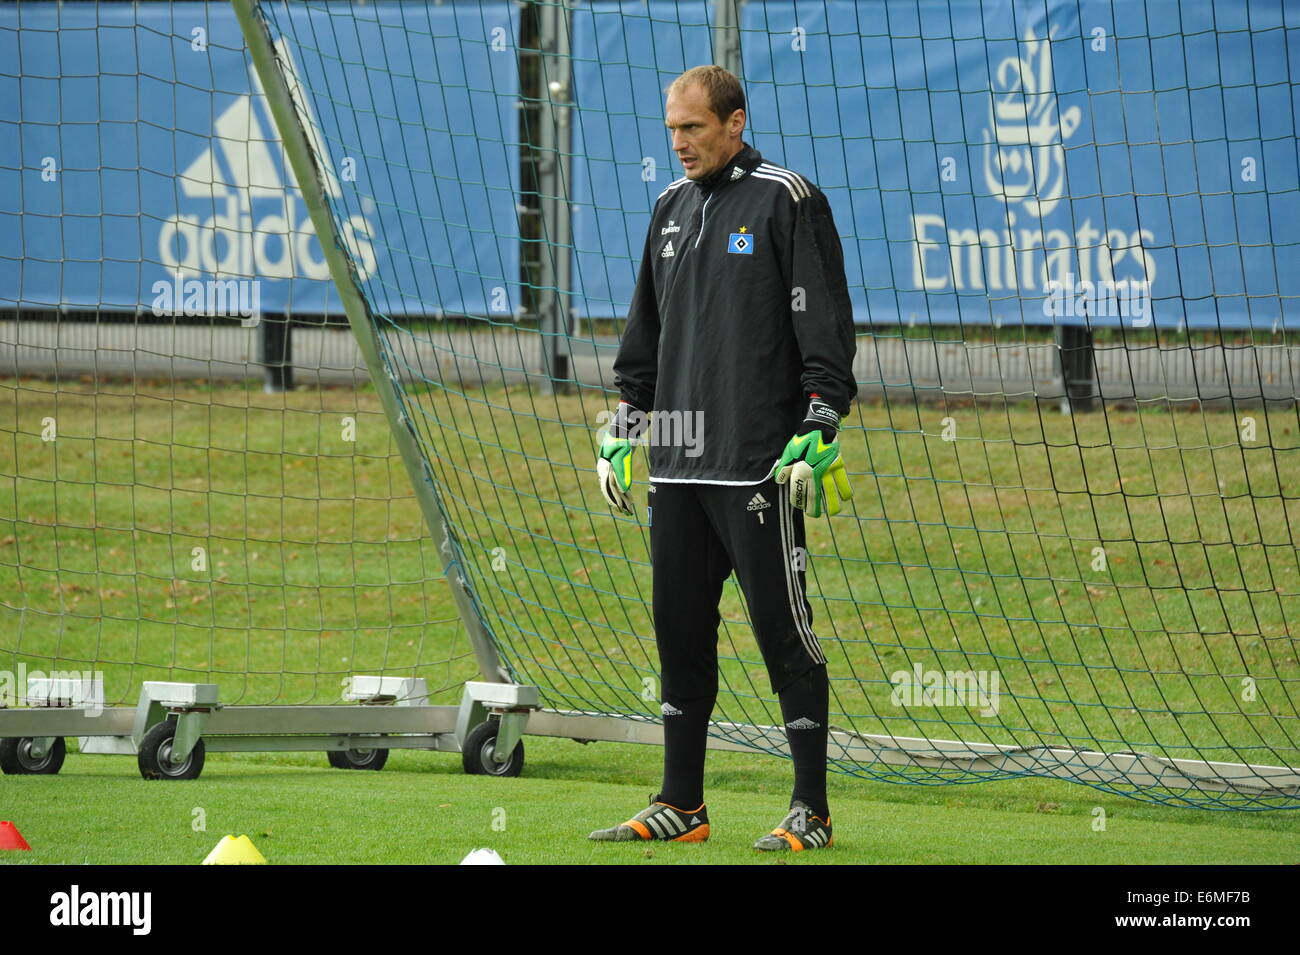 HSV-Training, Drobny im Tor, Hamburg, Deutschland, Editorial use only. - Stock Image